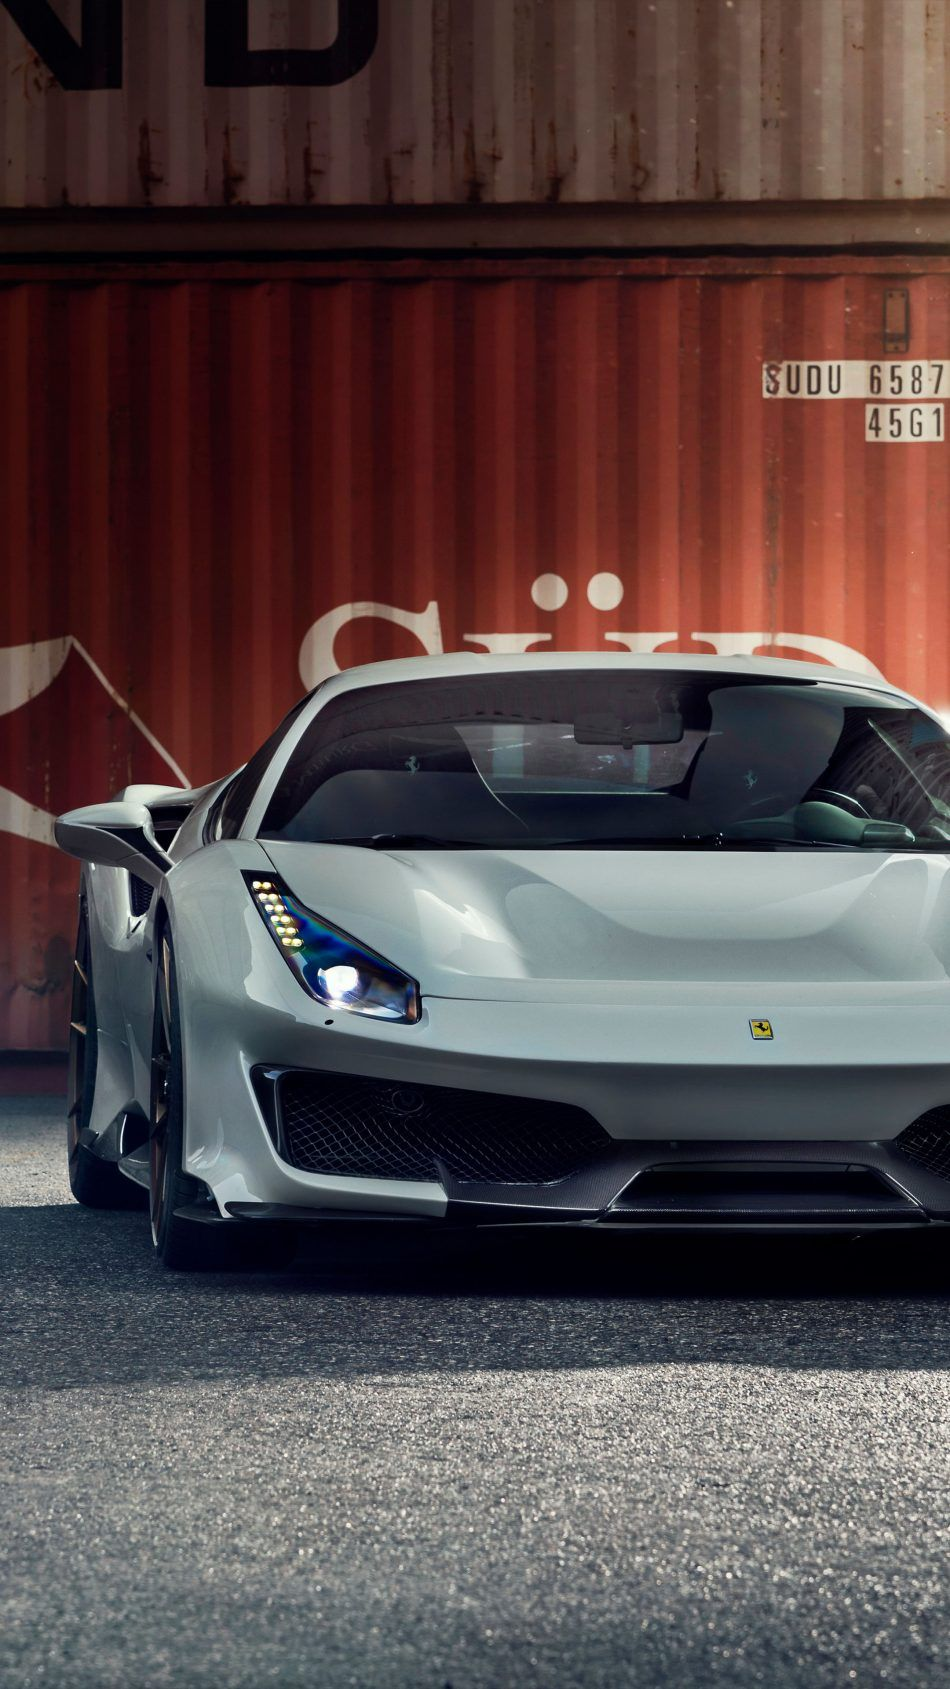 Ferrari 488 Pista 4k Ultra Hd Mobile Wallpaper Car Iphone Wallpaper Best Luxury Cars Car Wallpapers